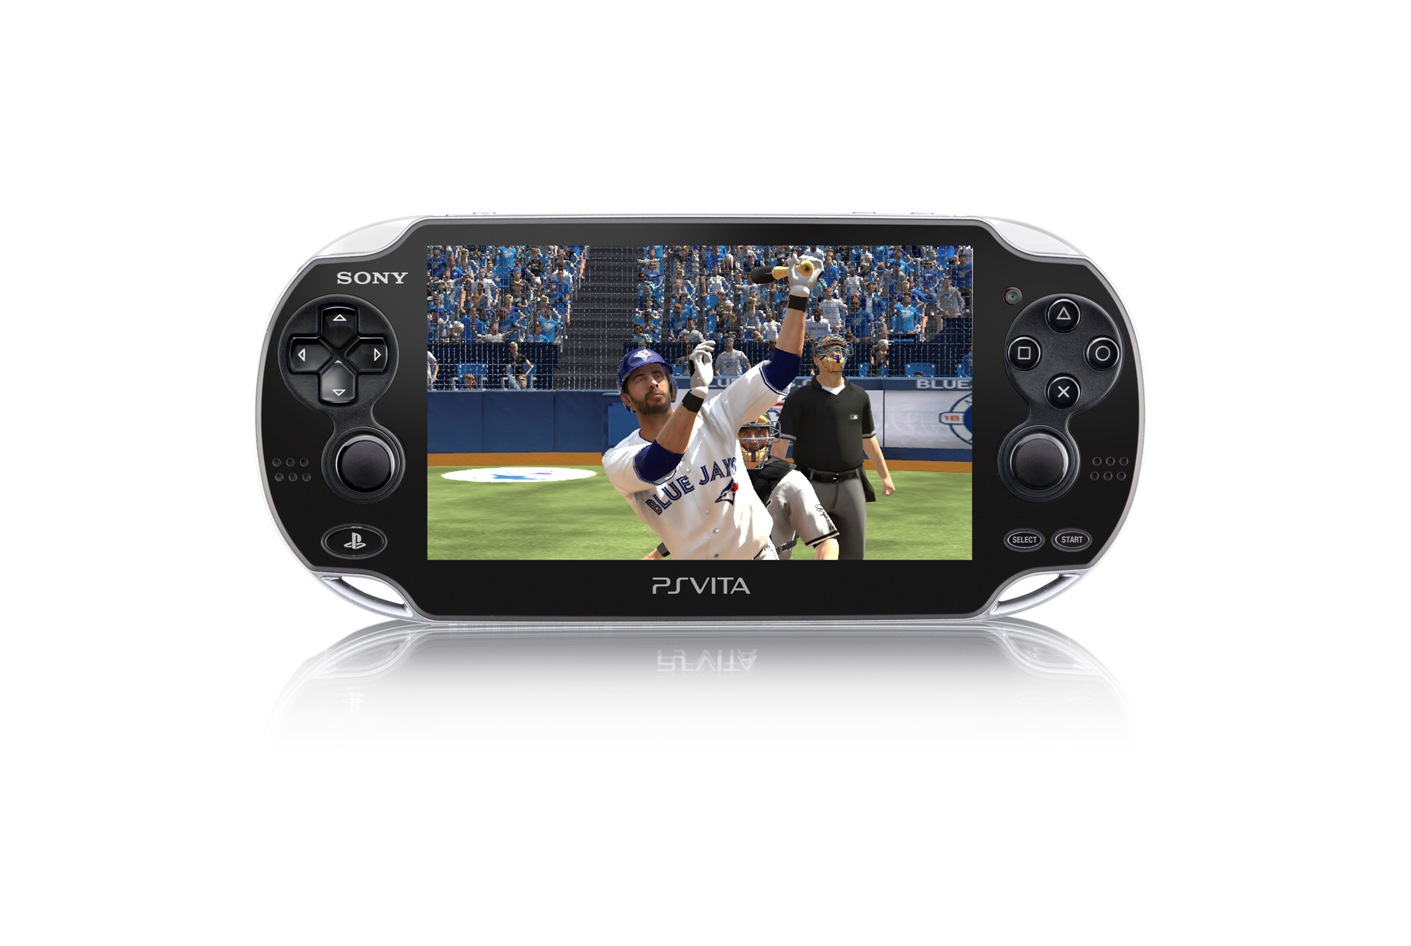 Sony Ps Vita Games Screenshots : Sony releases new ps vita screenshots and a fact sheet for